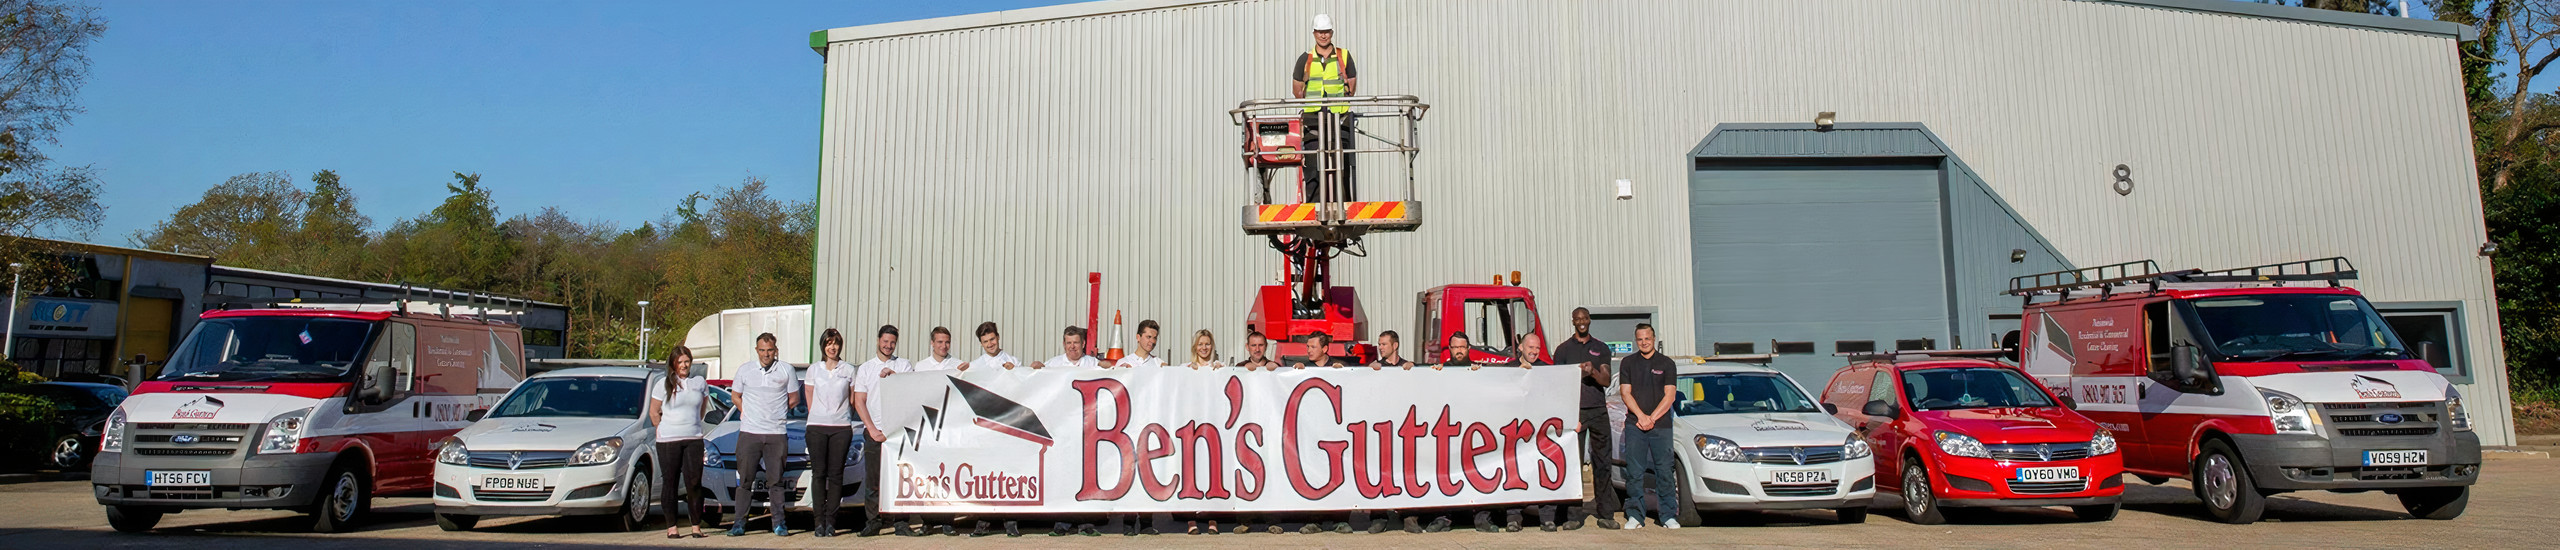 bens gutters Hedge End